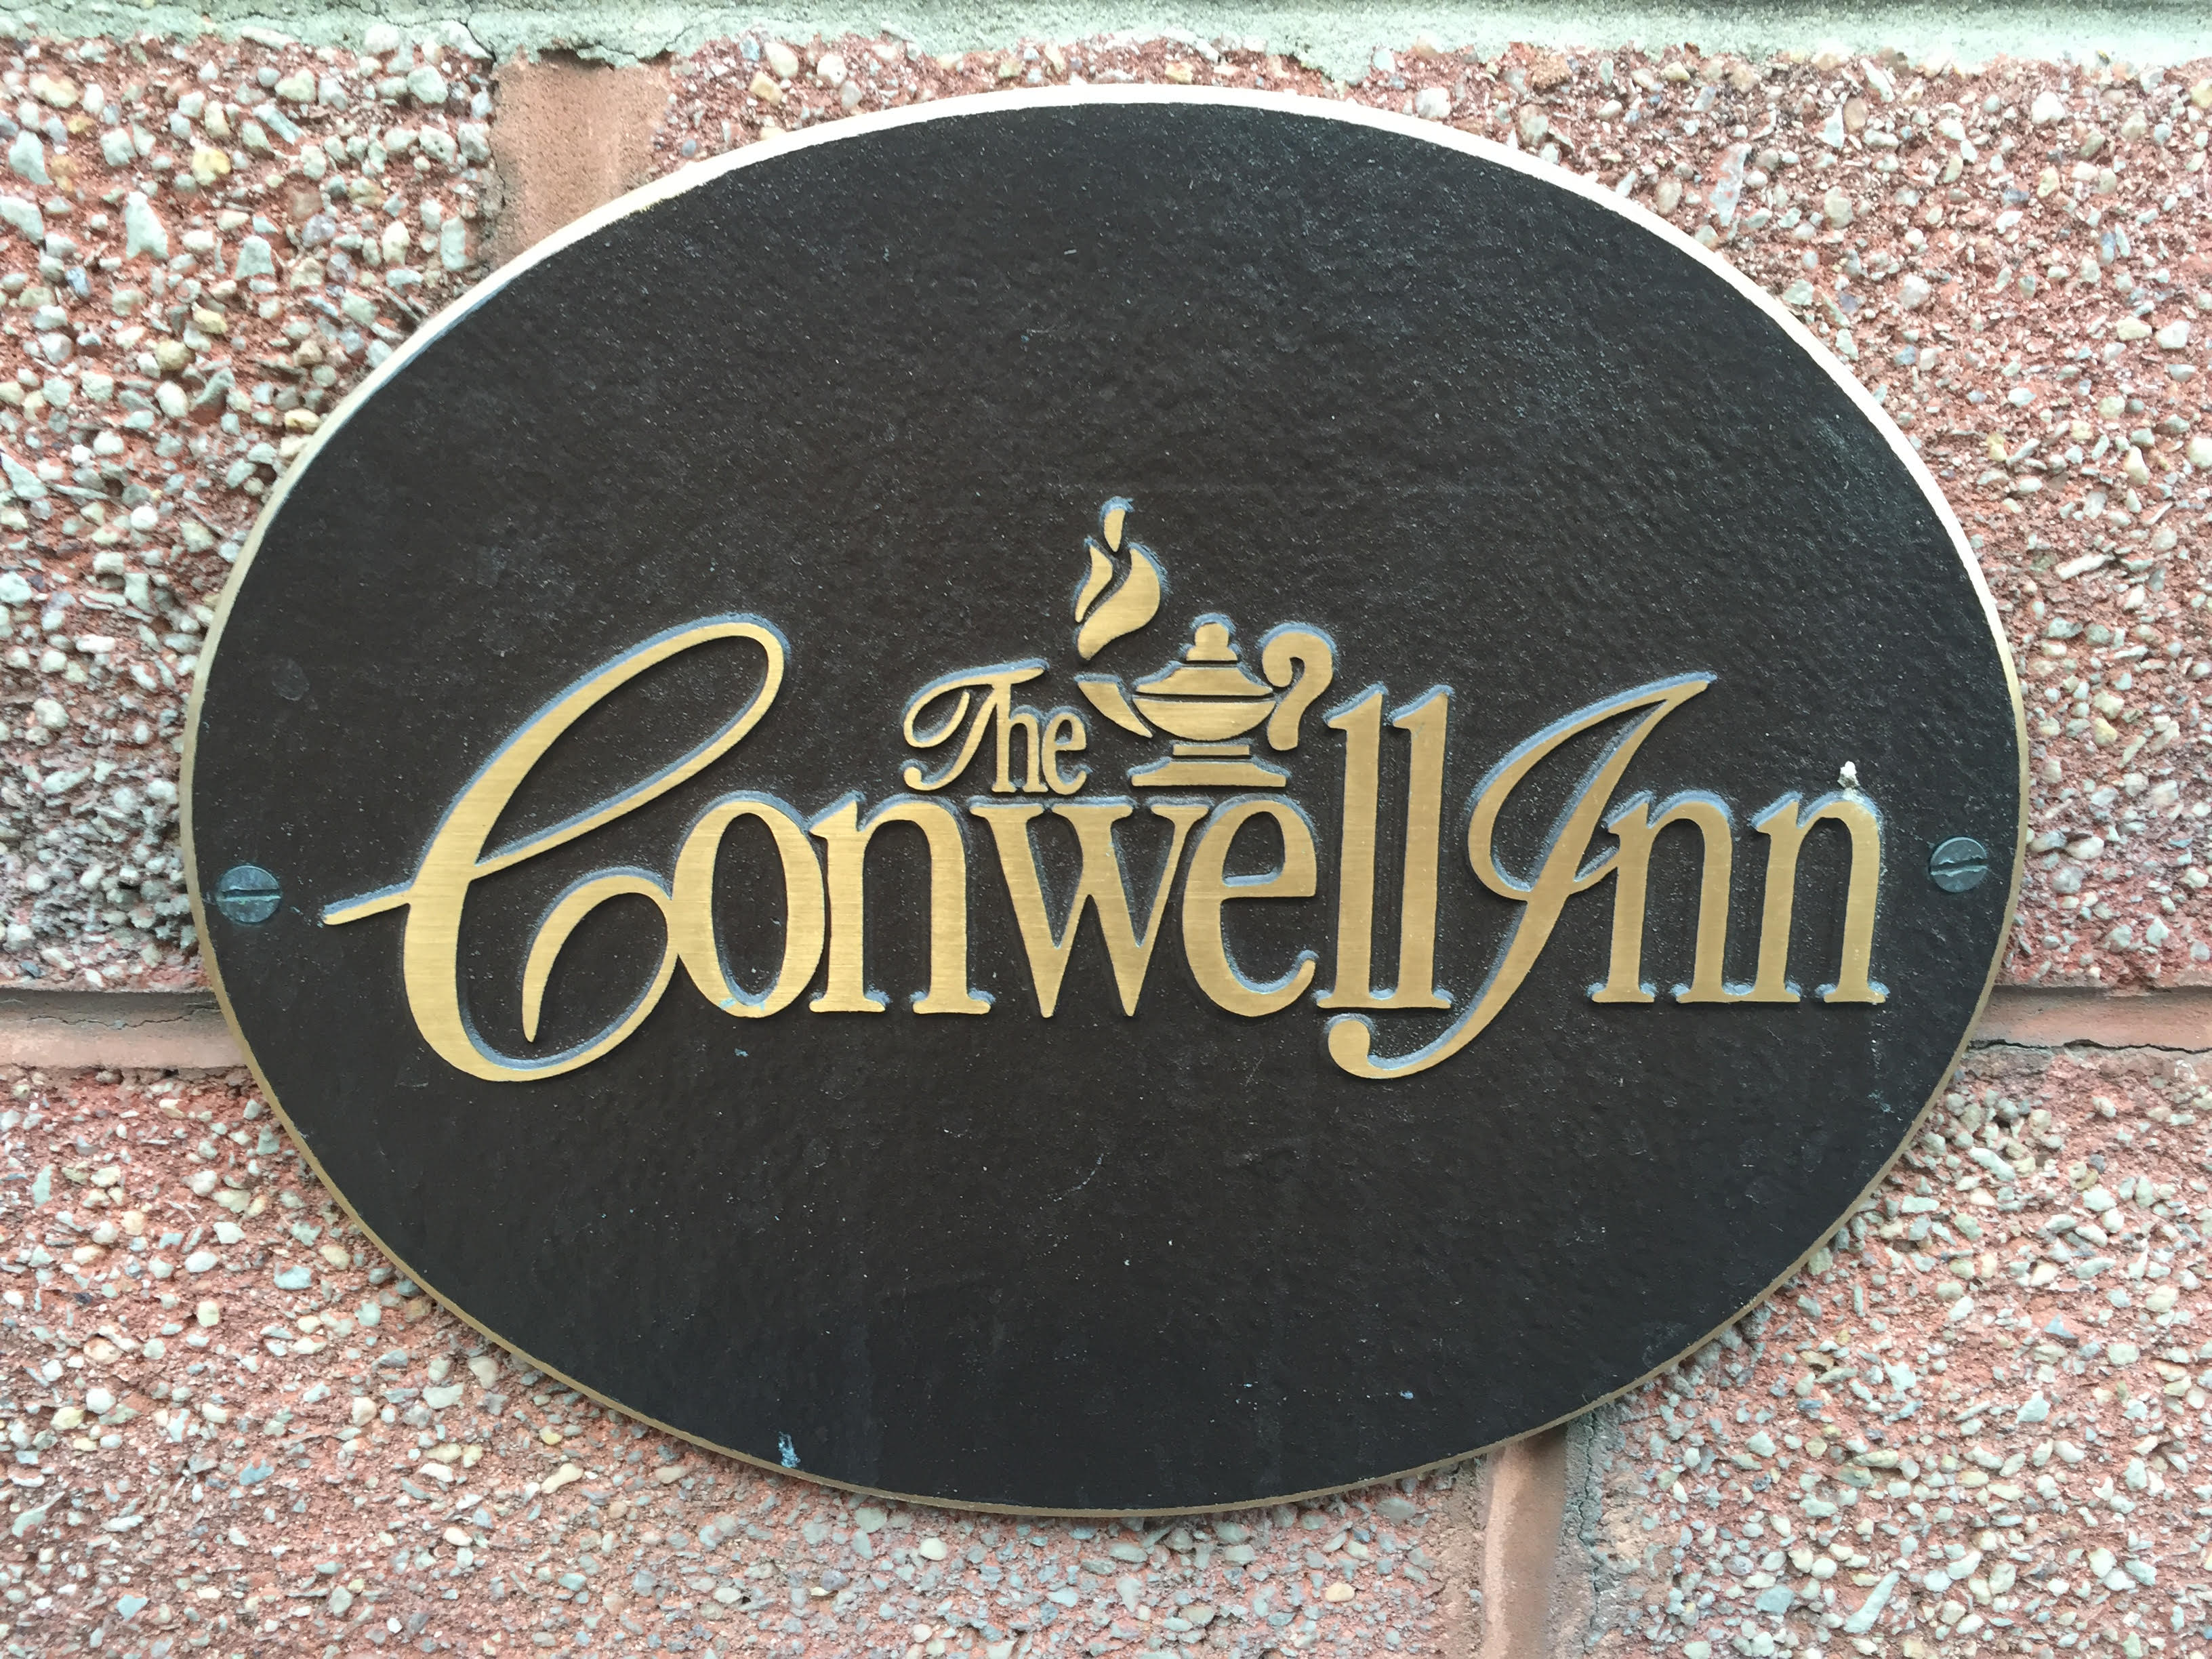 The Conwell Inn housed many of the Temple employees who were needed for work during the snowstorm. (Photo by Ryan Silverthorn)